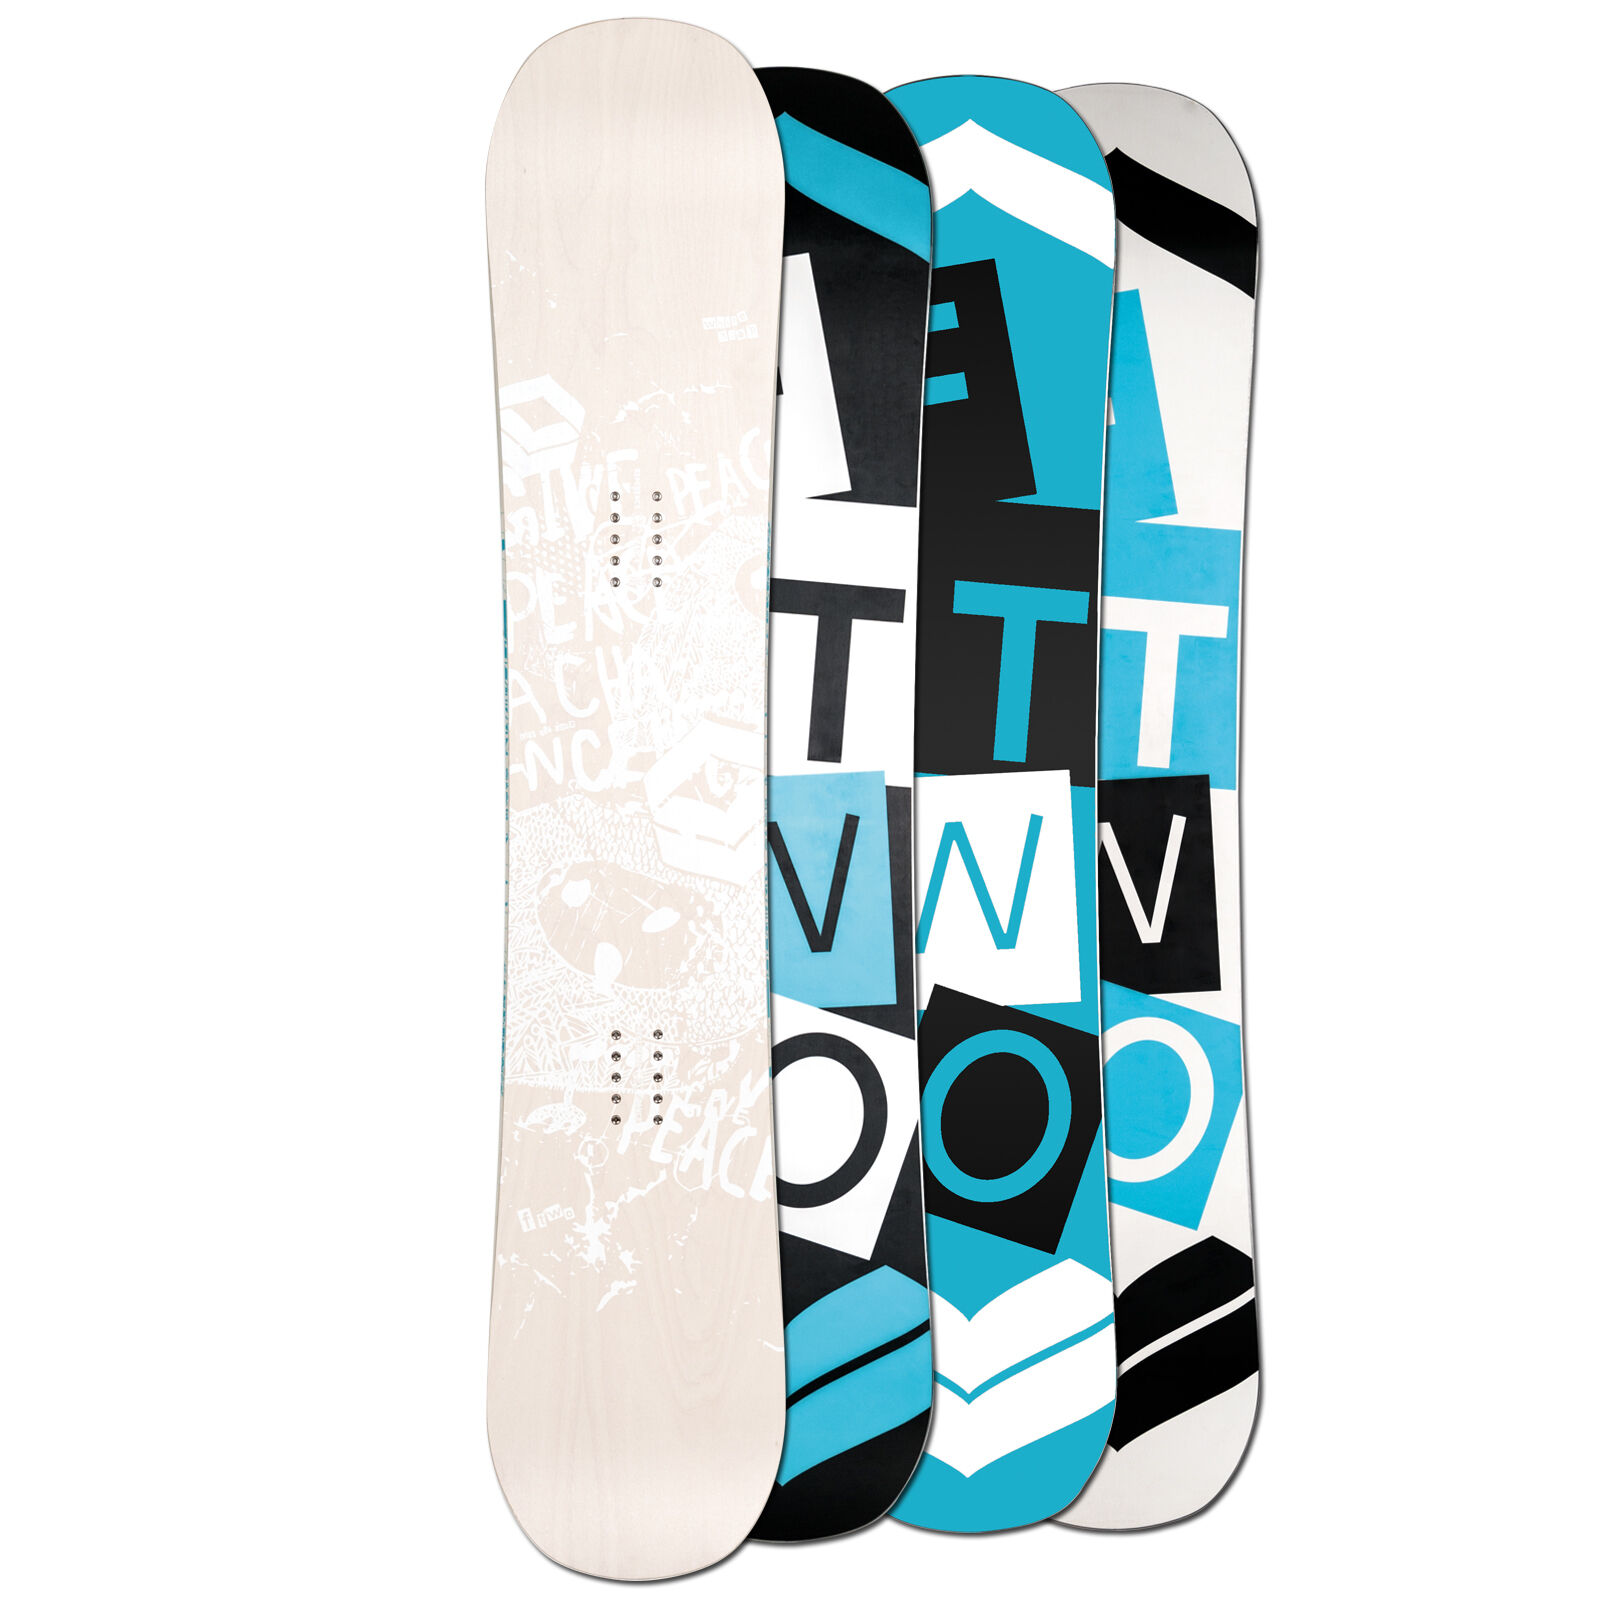 Ftwo Donna Freestyle Snowboard biancadeck Wood Donna 154 cm Camber